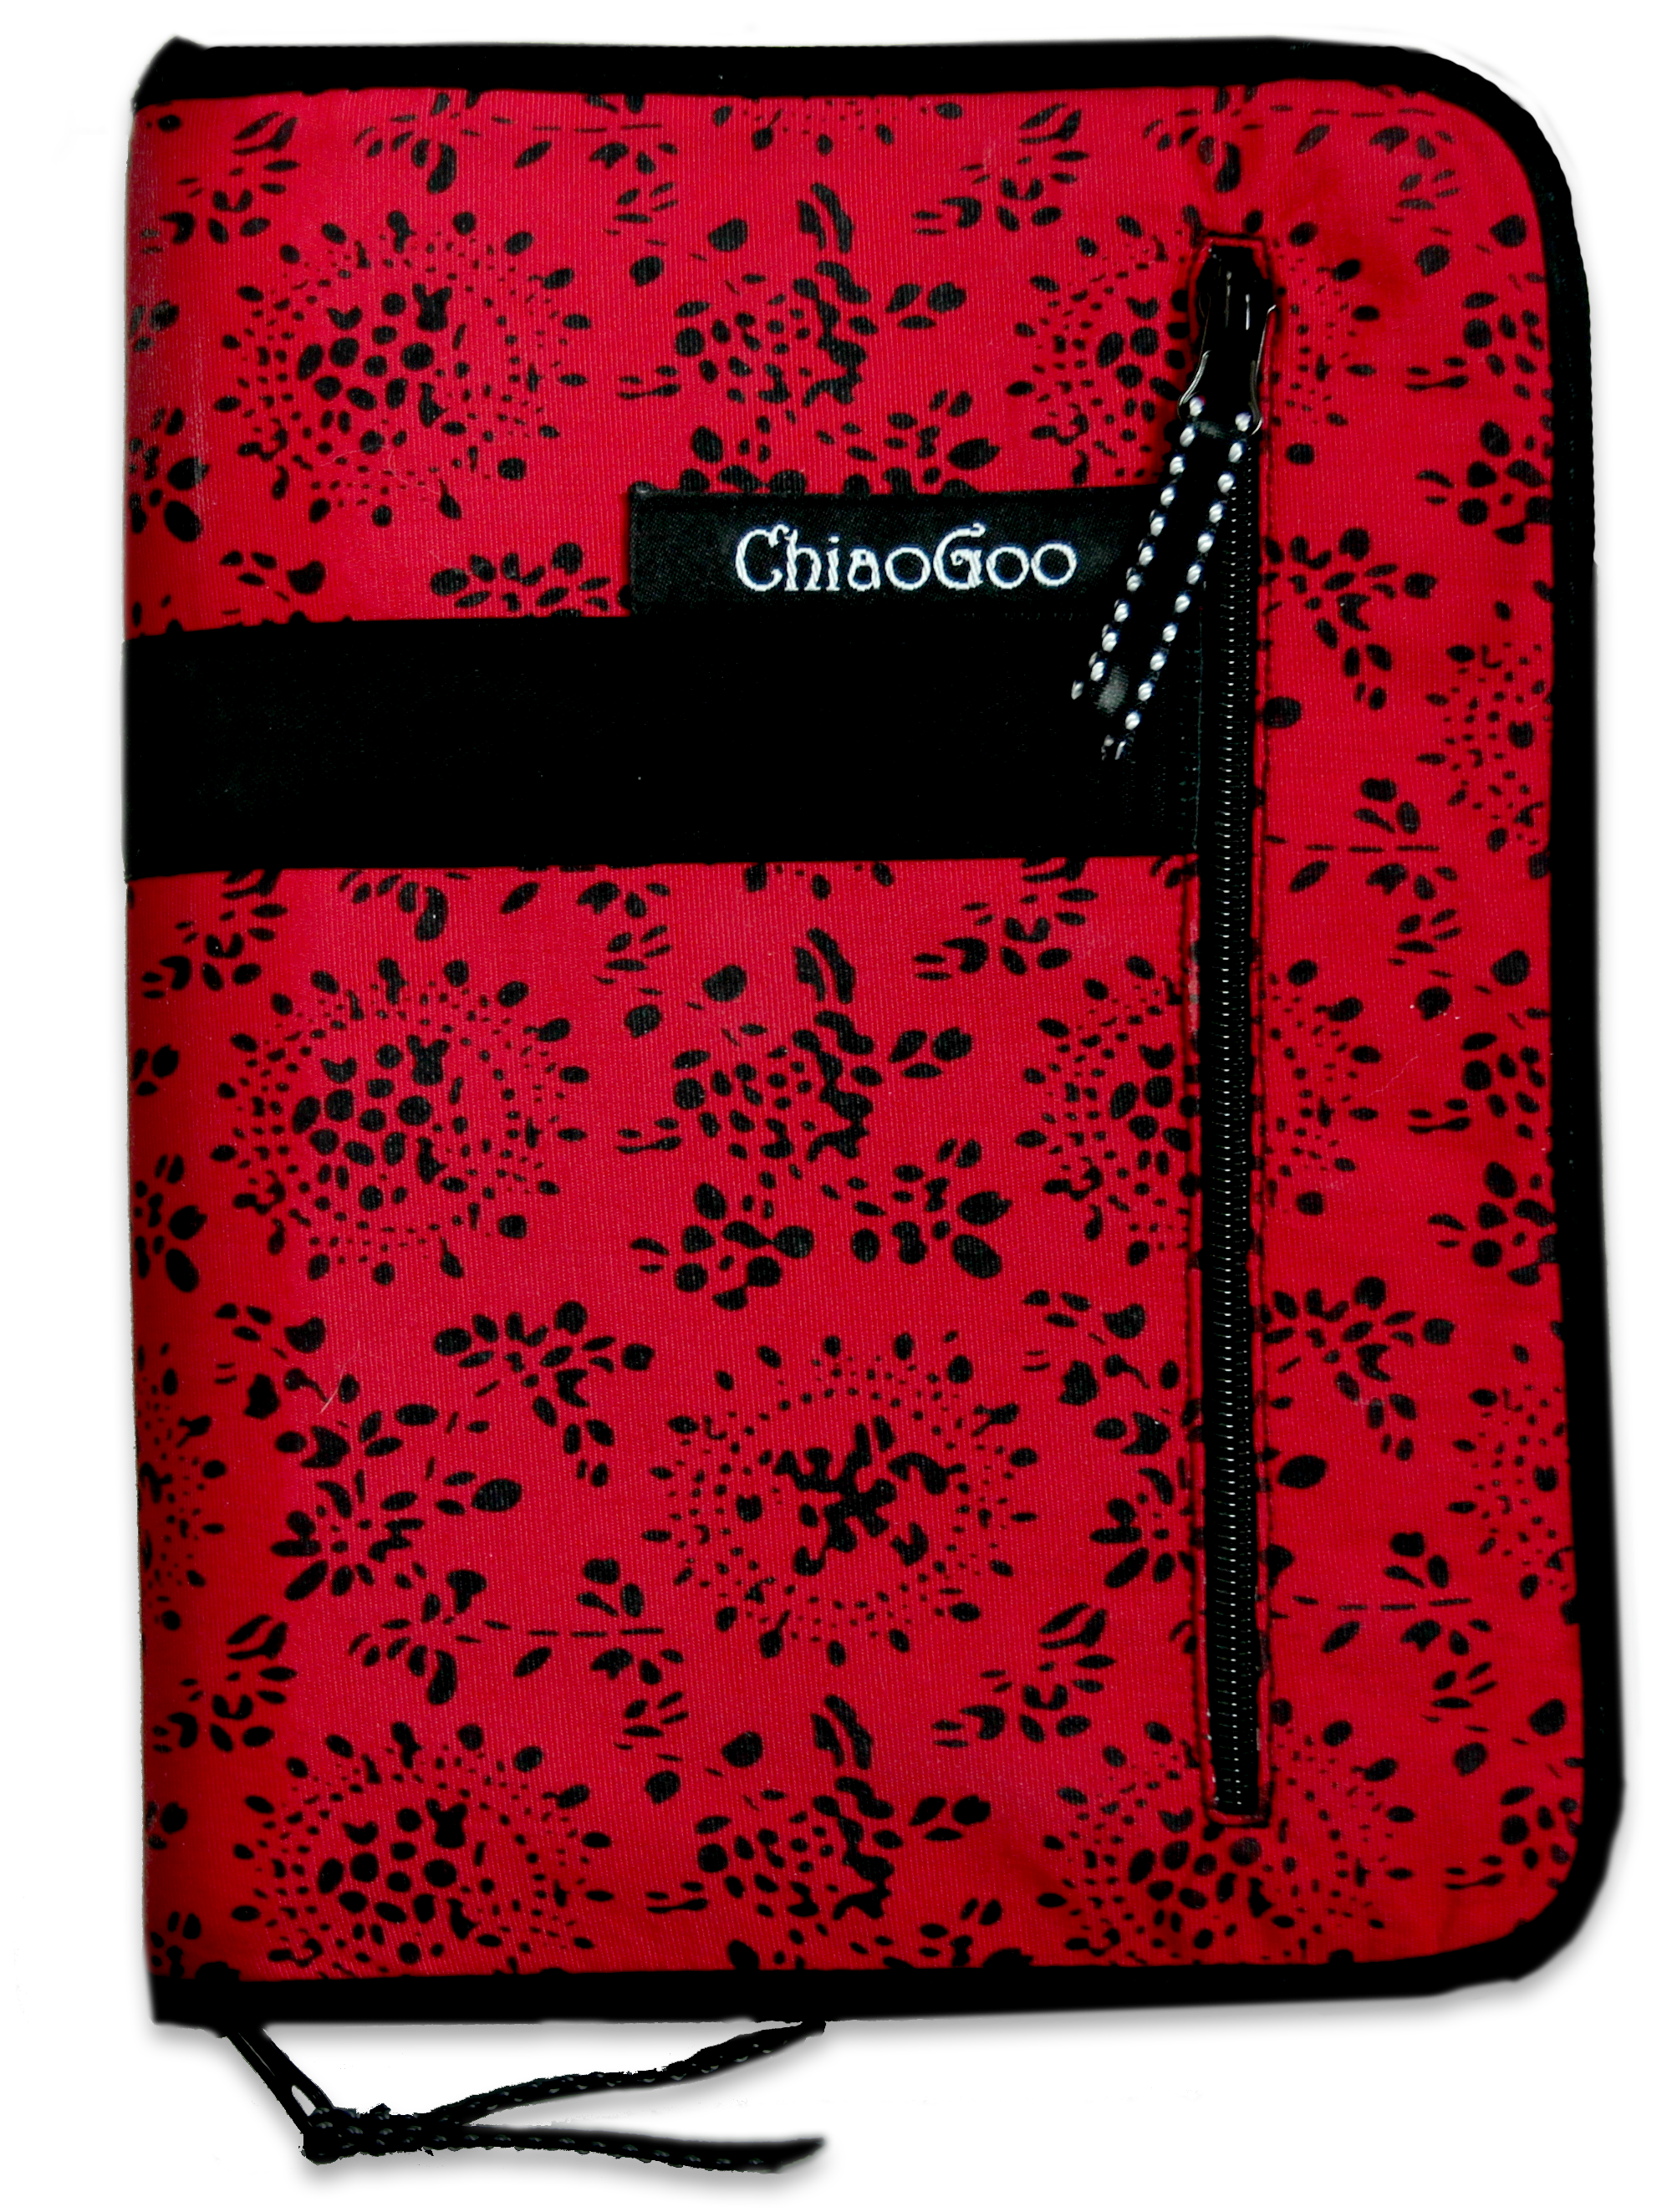 ChiaoGoo Crochet - Tunisian Interchangeable Hook Case